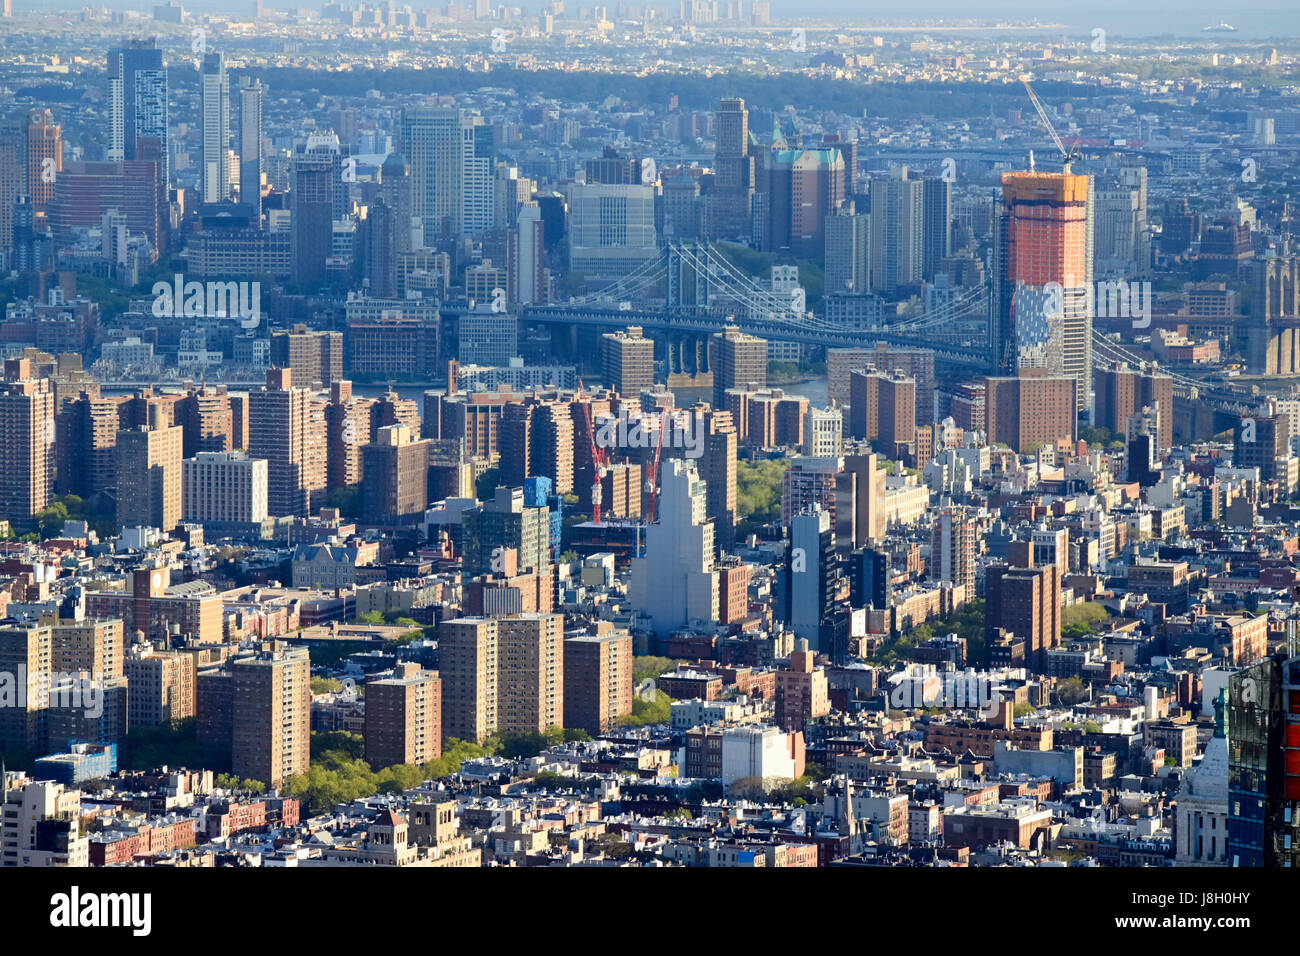 views of the lower east side east village over the manhattan bridge to brooklyn New York City USA - Stock Image